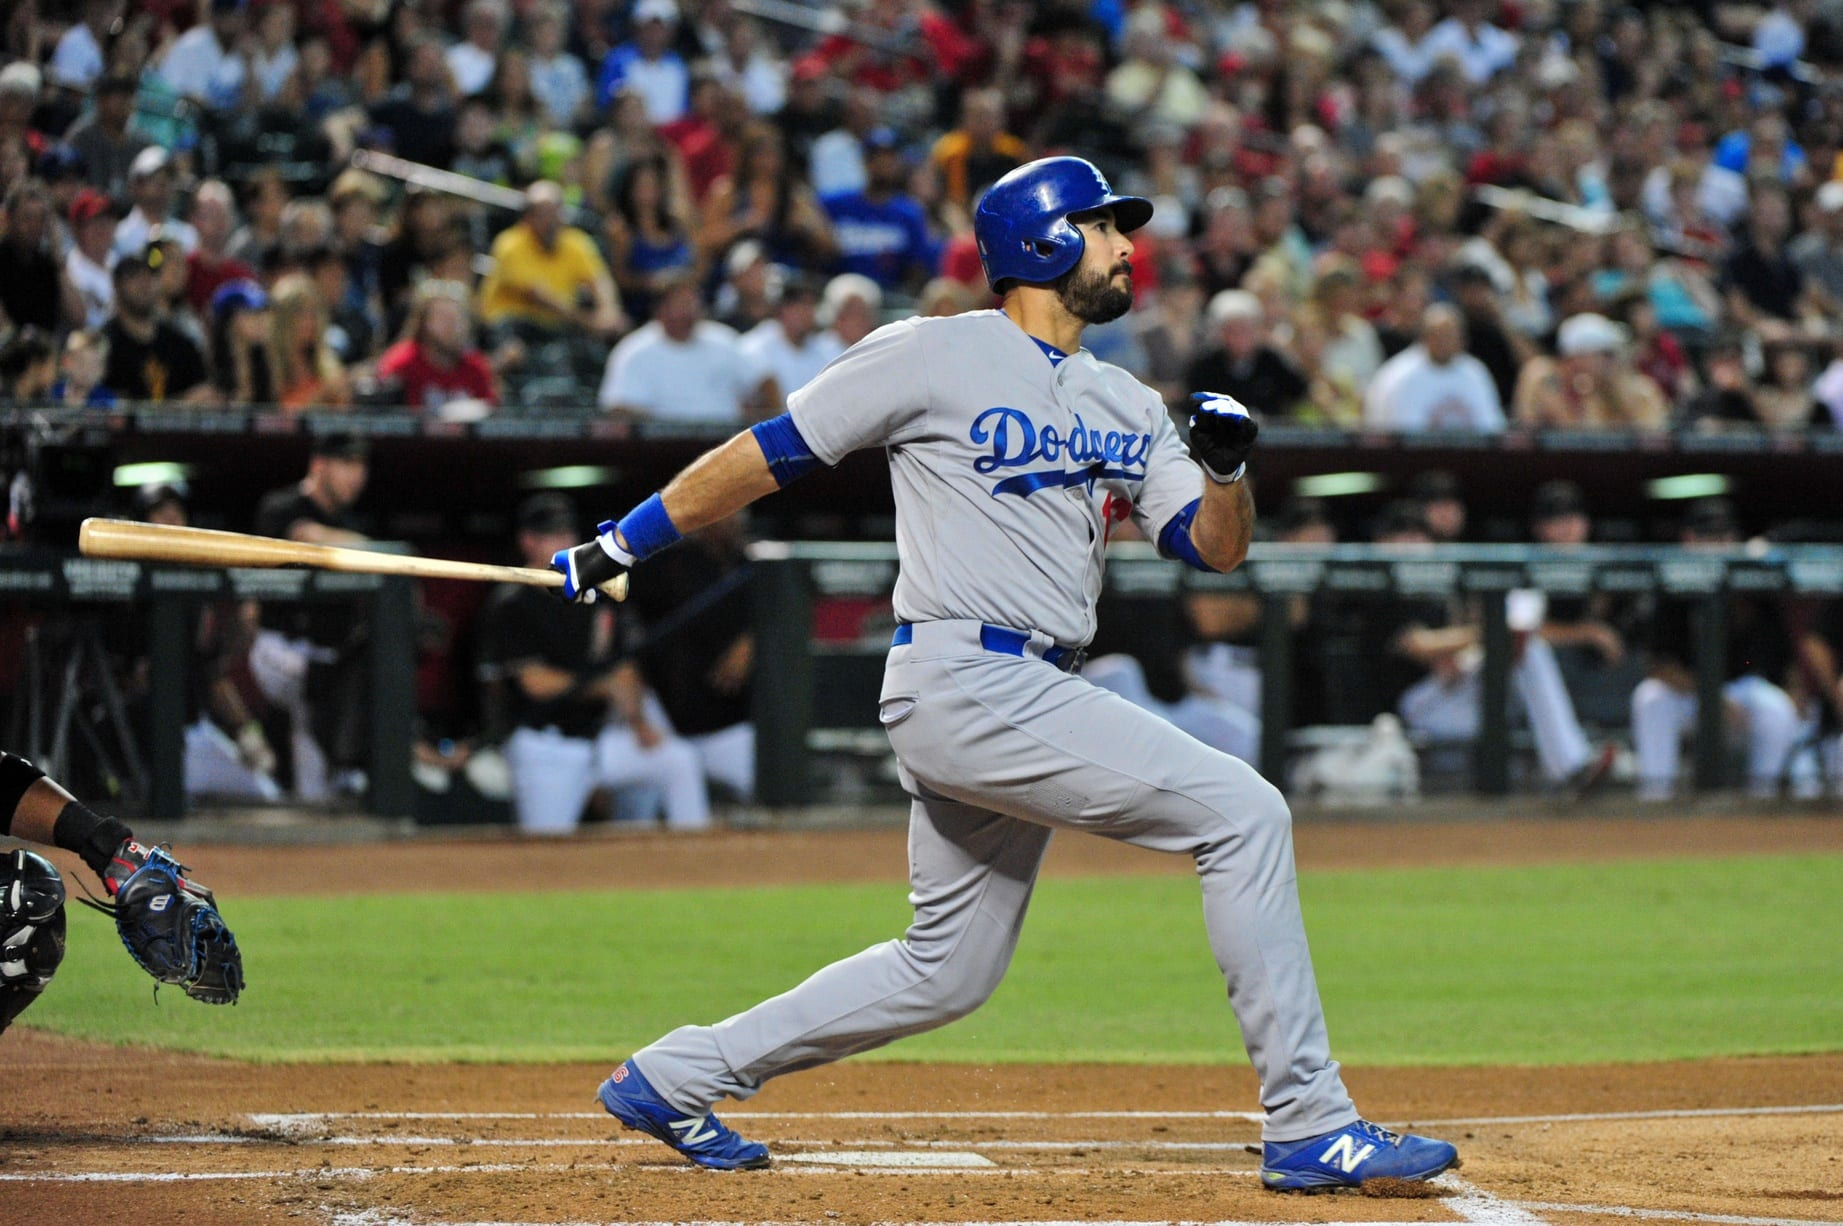 Dodgers News: Andre Ethier Hopes Loss To Giants Provides Spark